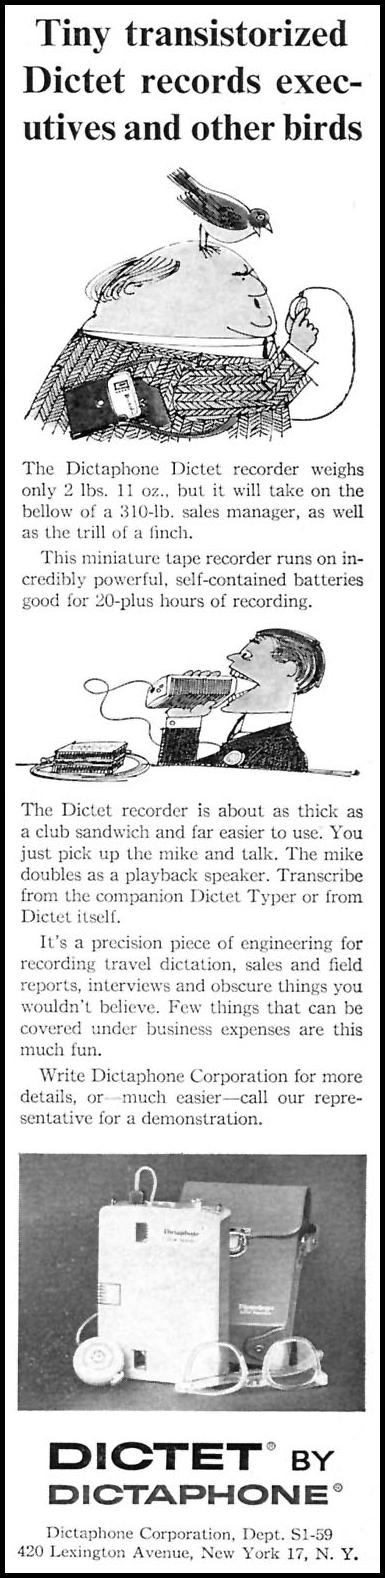 DICTAPHONE DICTET RECORDER SPORTS ILLUSTRATED 05/25/1959 p. 59